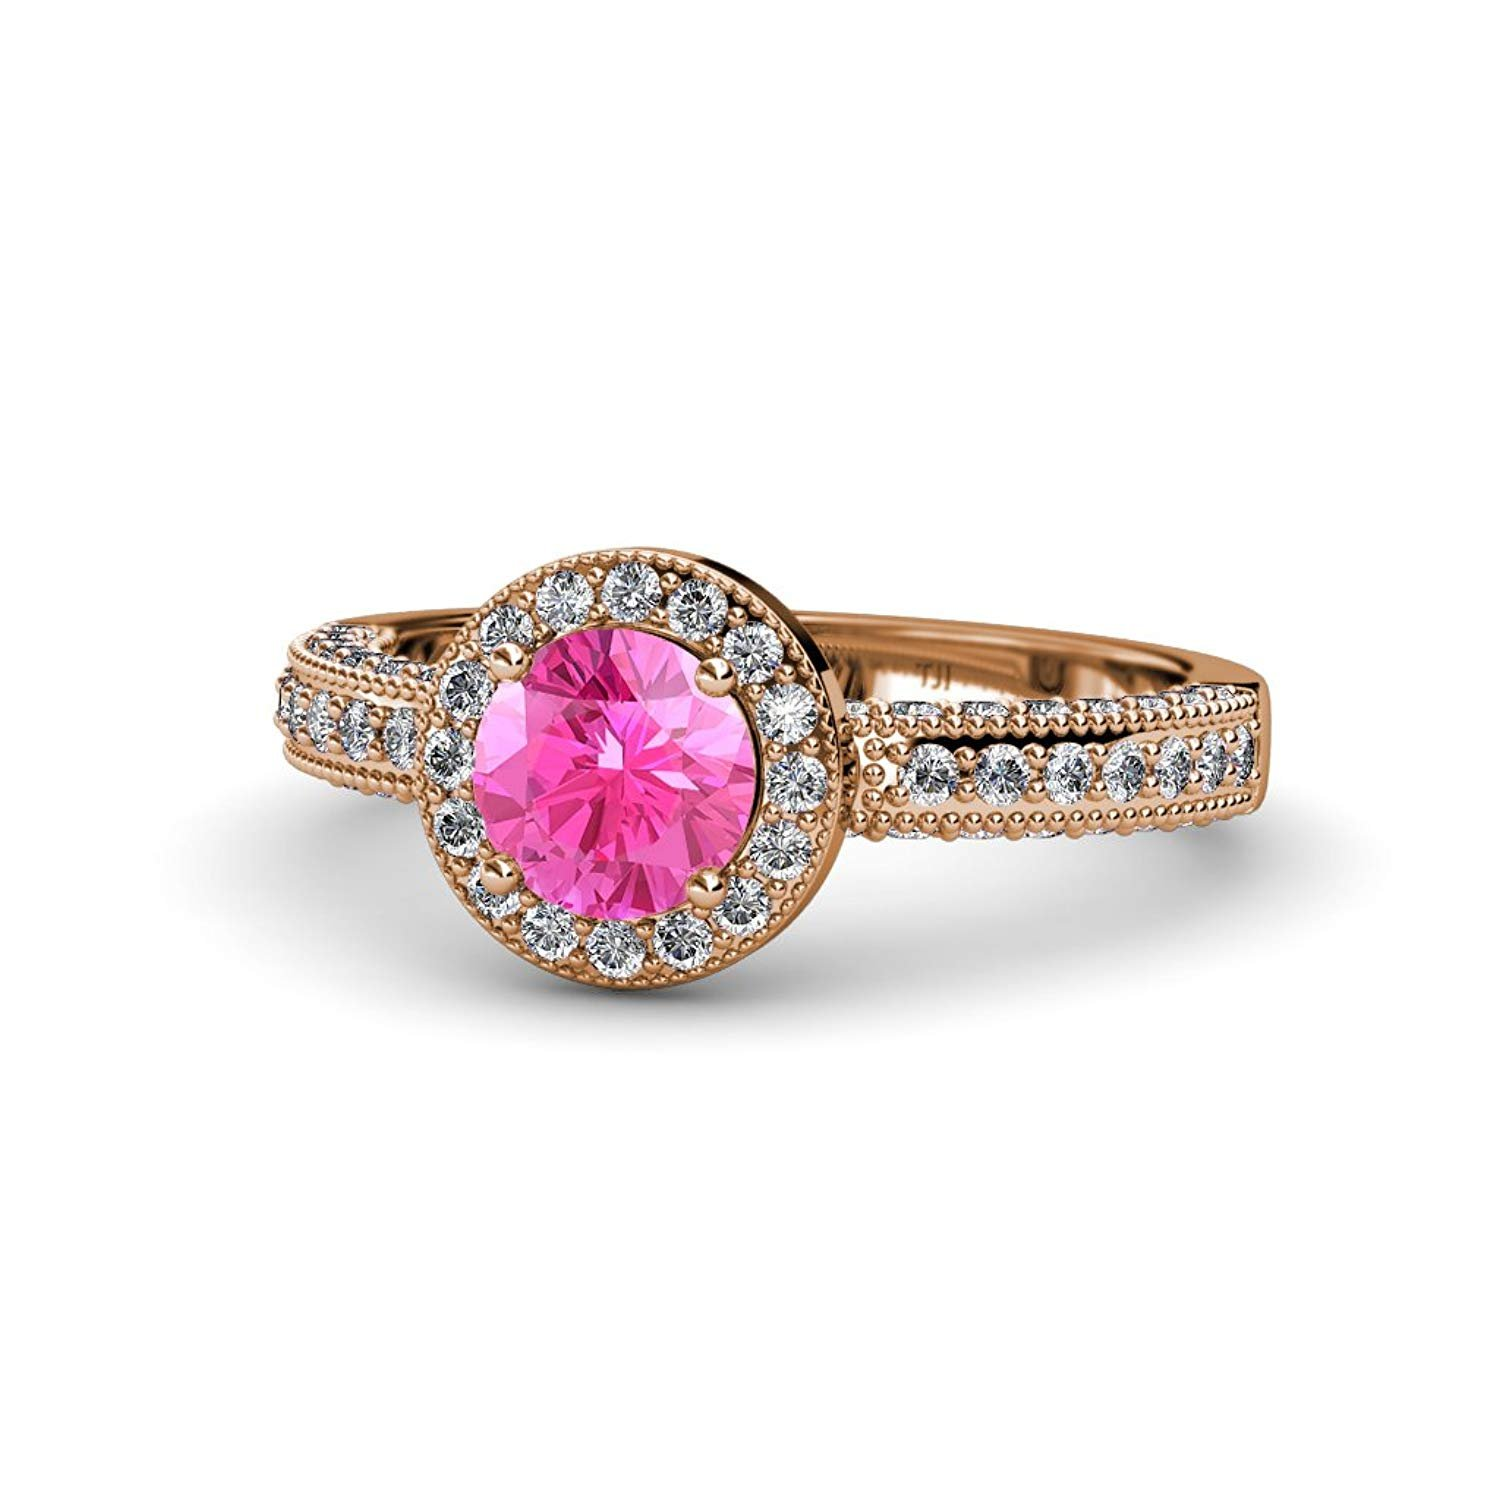 Pink Sapphire and Diamond Halo Engagement Ring with Milgrain Work 1.61 ct tw in 14K Rose Gold.size 5.0 by TriJewels